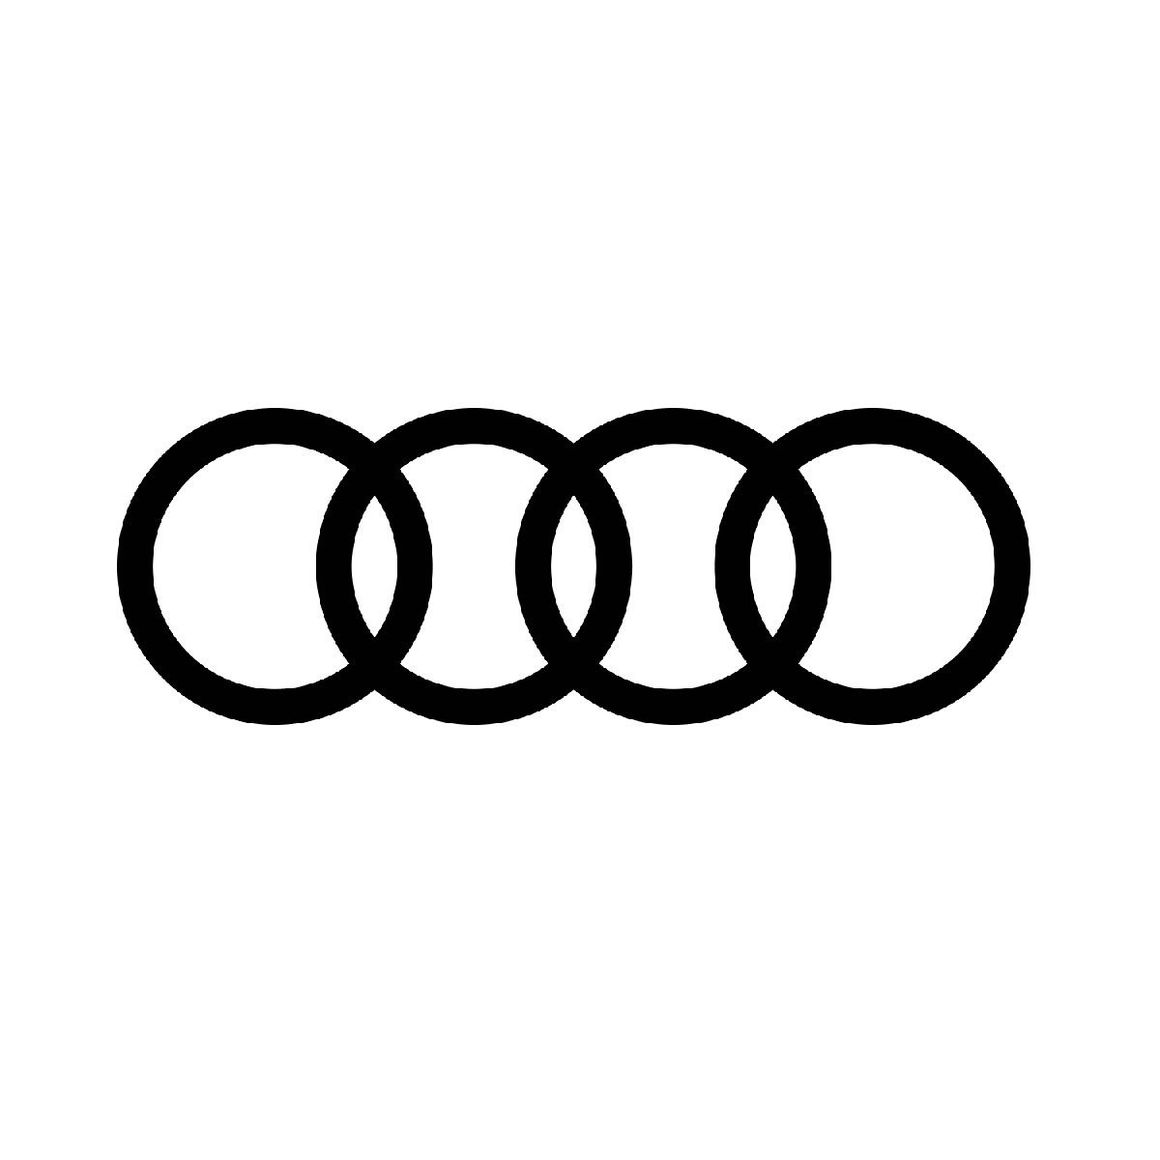 Audi Logo - Audi logo: New Corporate Design | Audi MediaCenter